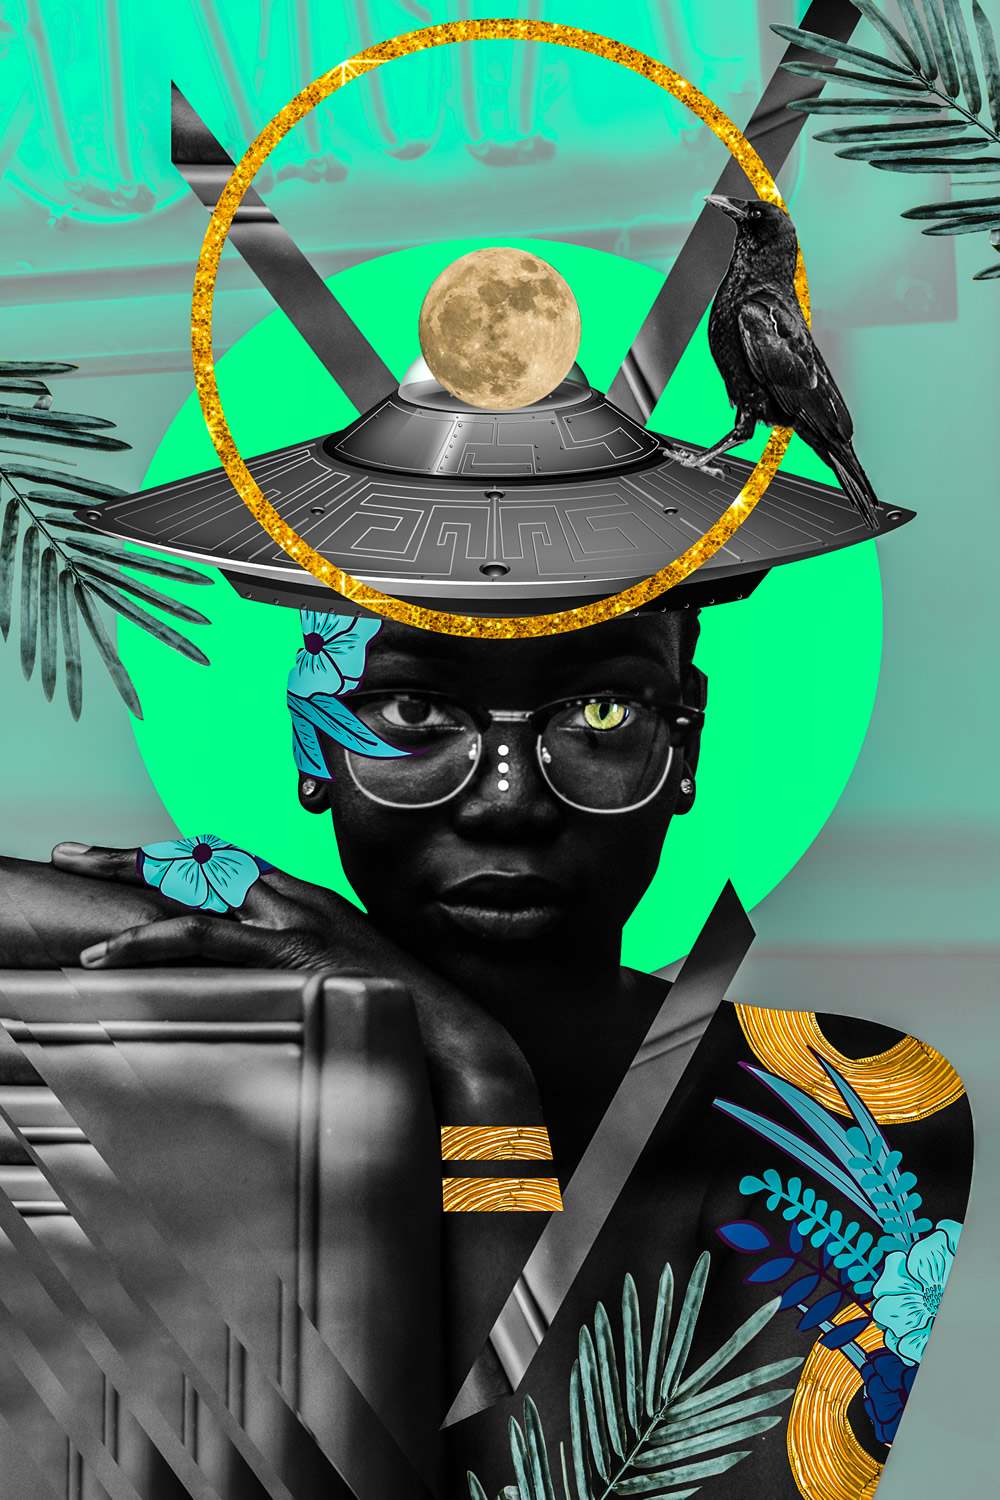 Lost In The Island: Electric and Vivid Collages by Kaylan M